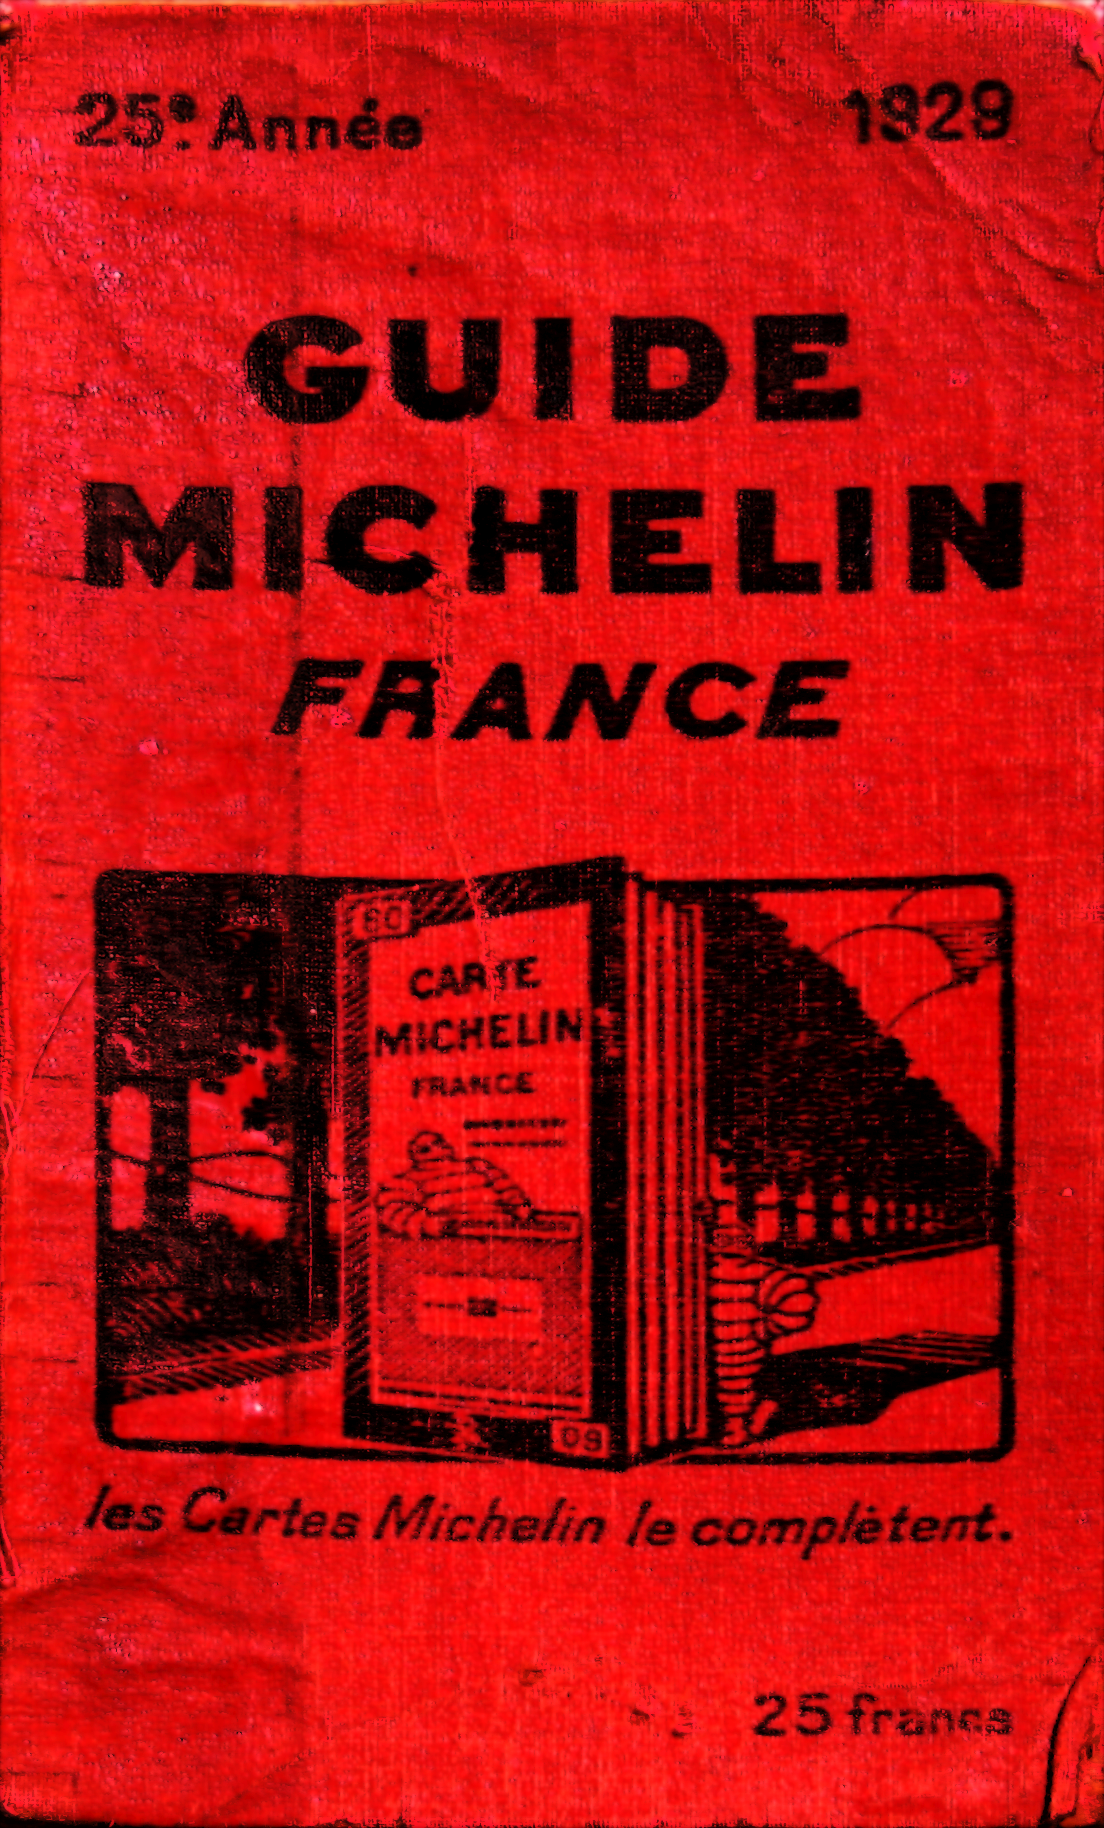 michelin guide simple english wikipedia the free encyclopedia. Black Bedroom Furniture Sets. Home Design Ideas